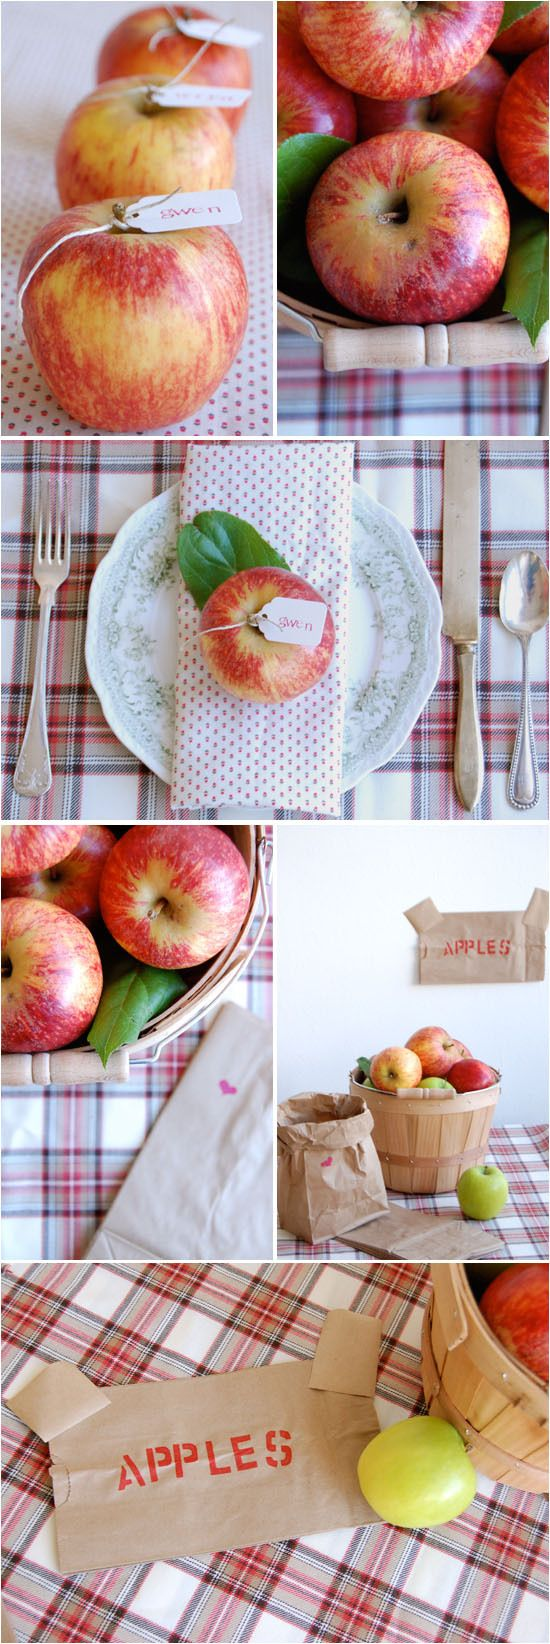 apple harvest favors - love the apples with string tied around them and a name tag.